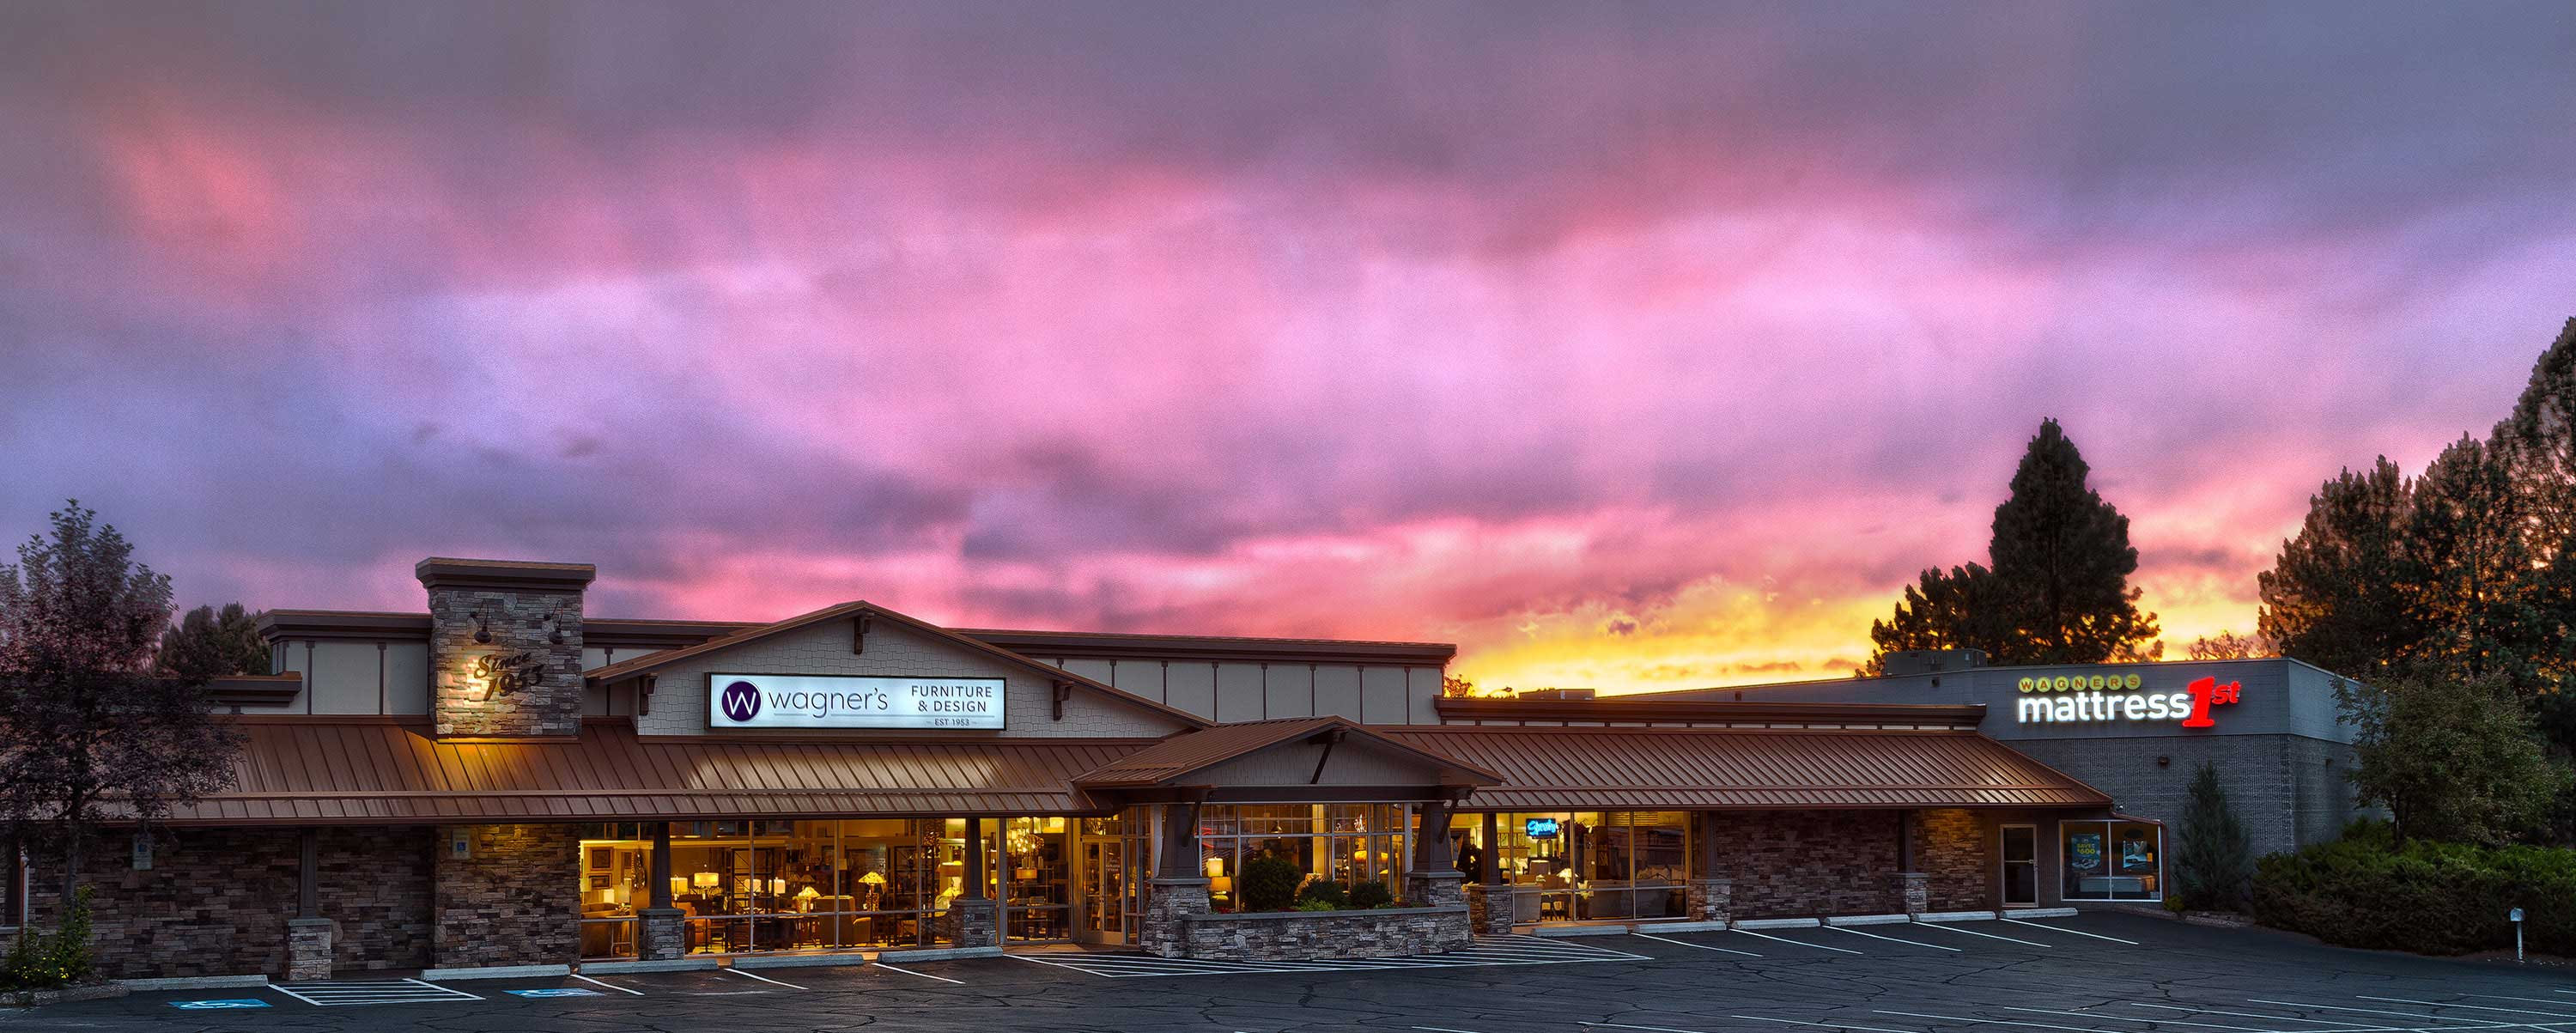 Wagner's at sunset